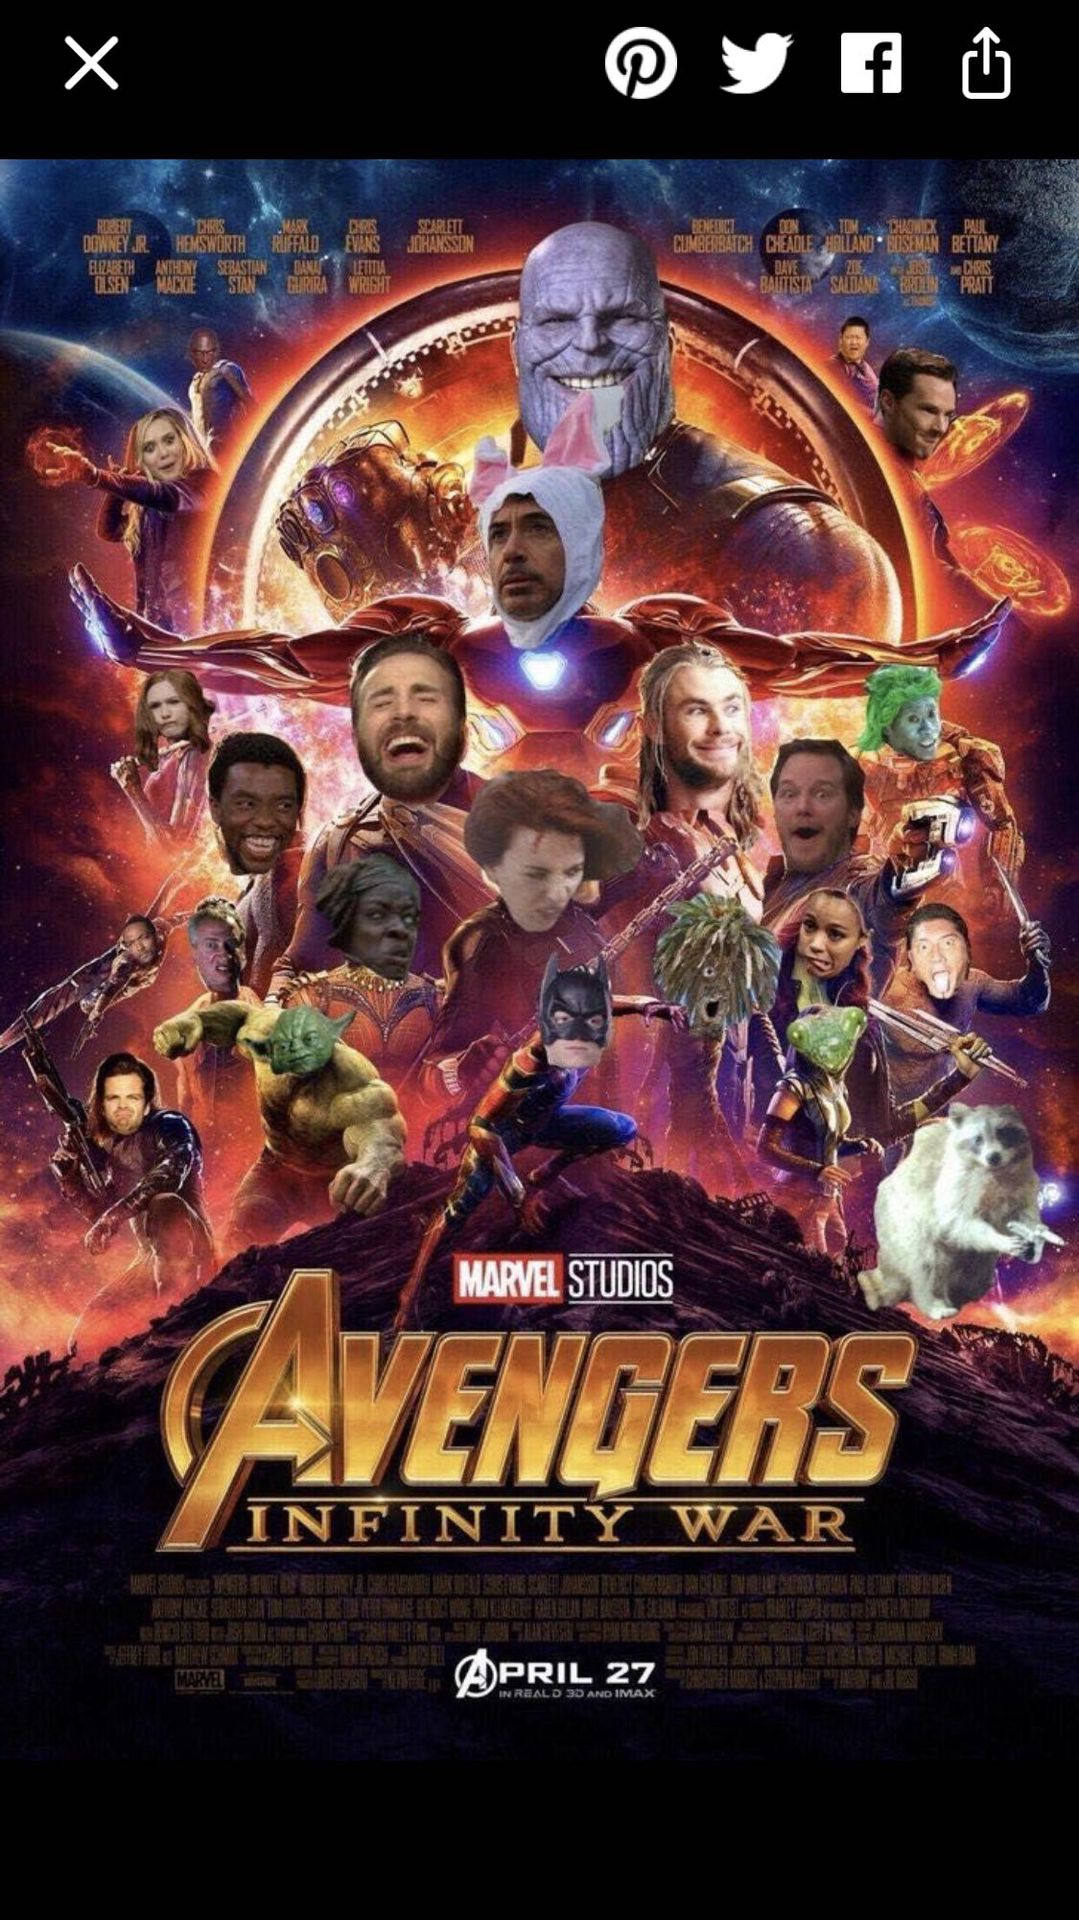 Avengers infinity war x reader one shots - Chatroom crack